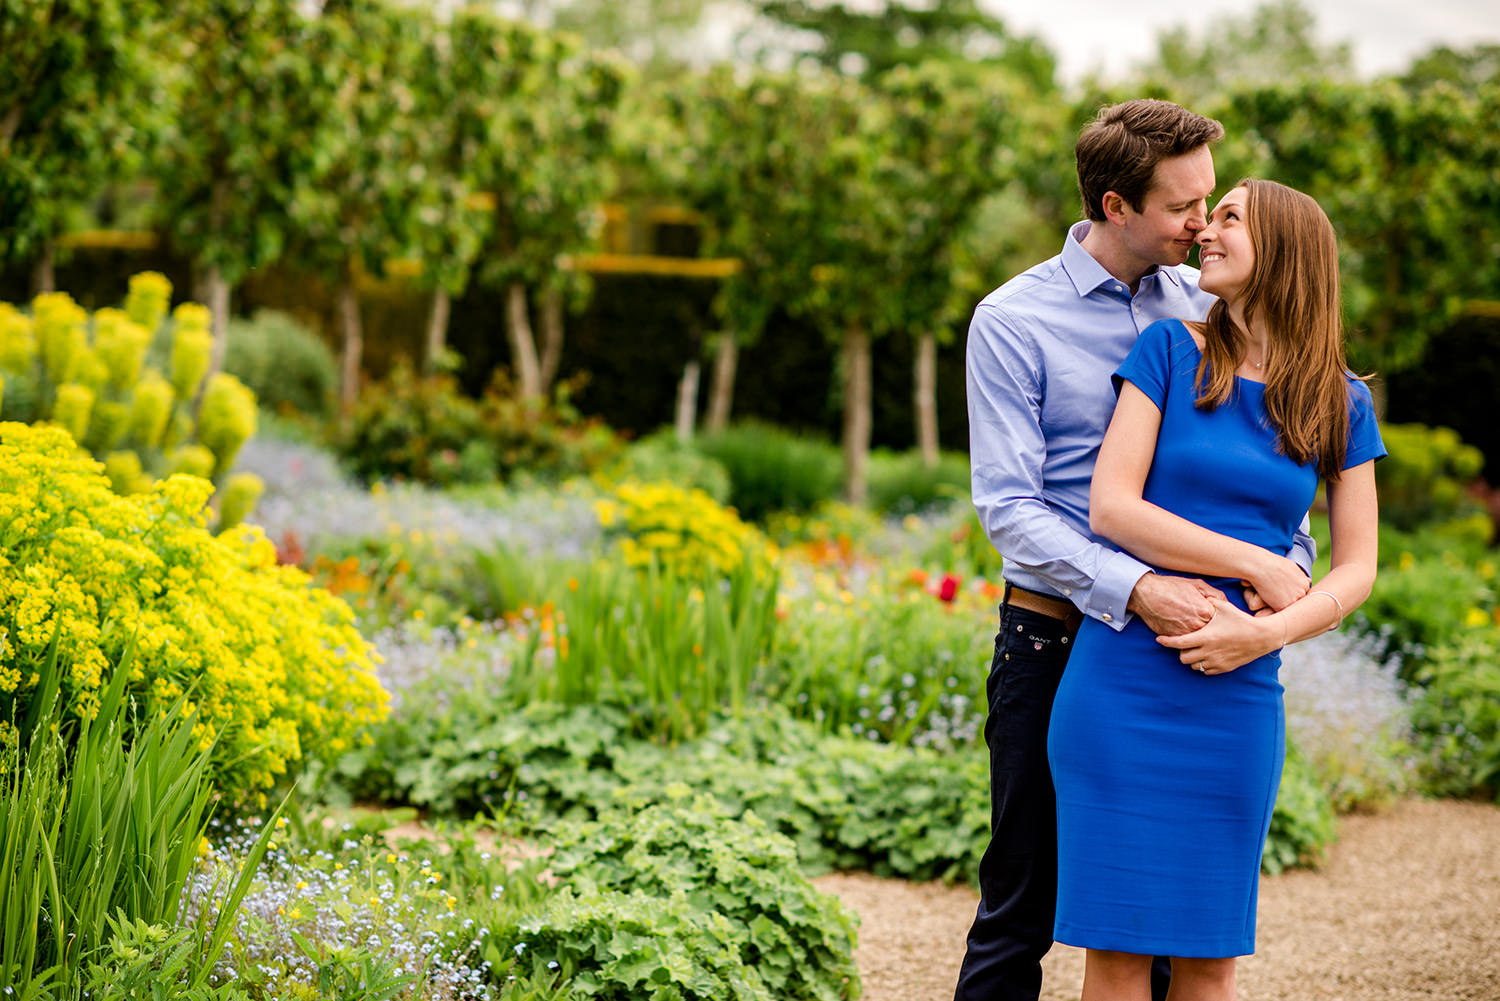 Loseley Park engagement photography